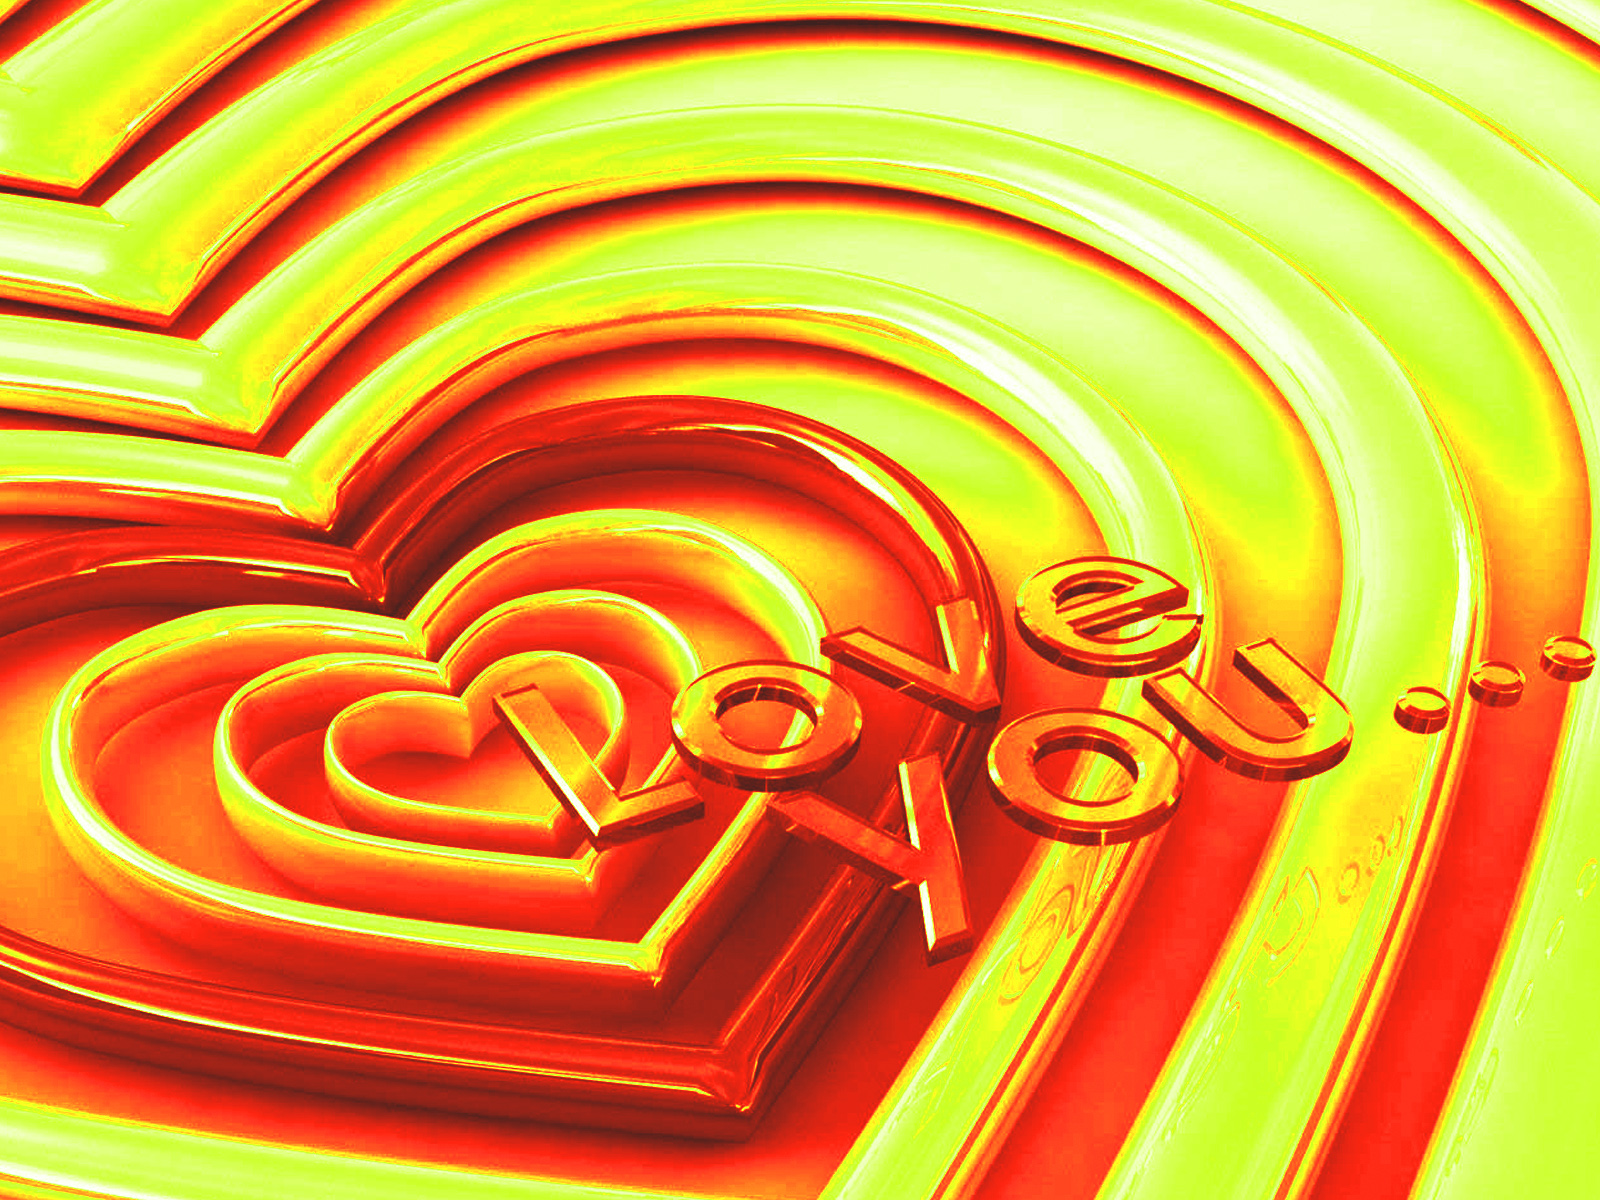 3d love wallpapers free download wallpaper download (1600 x 1200